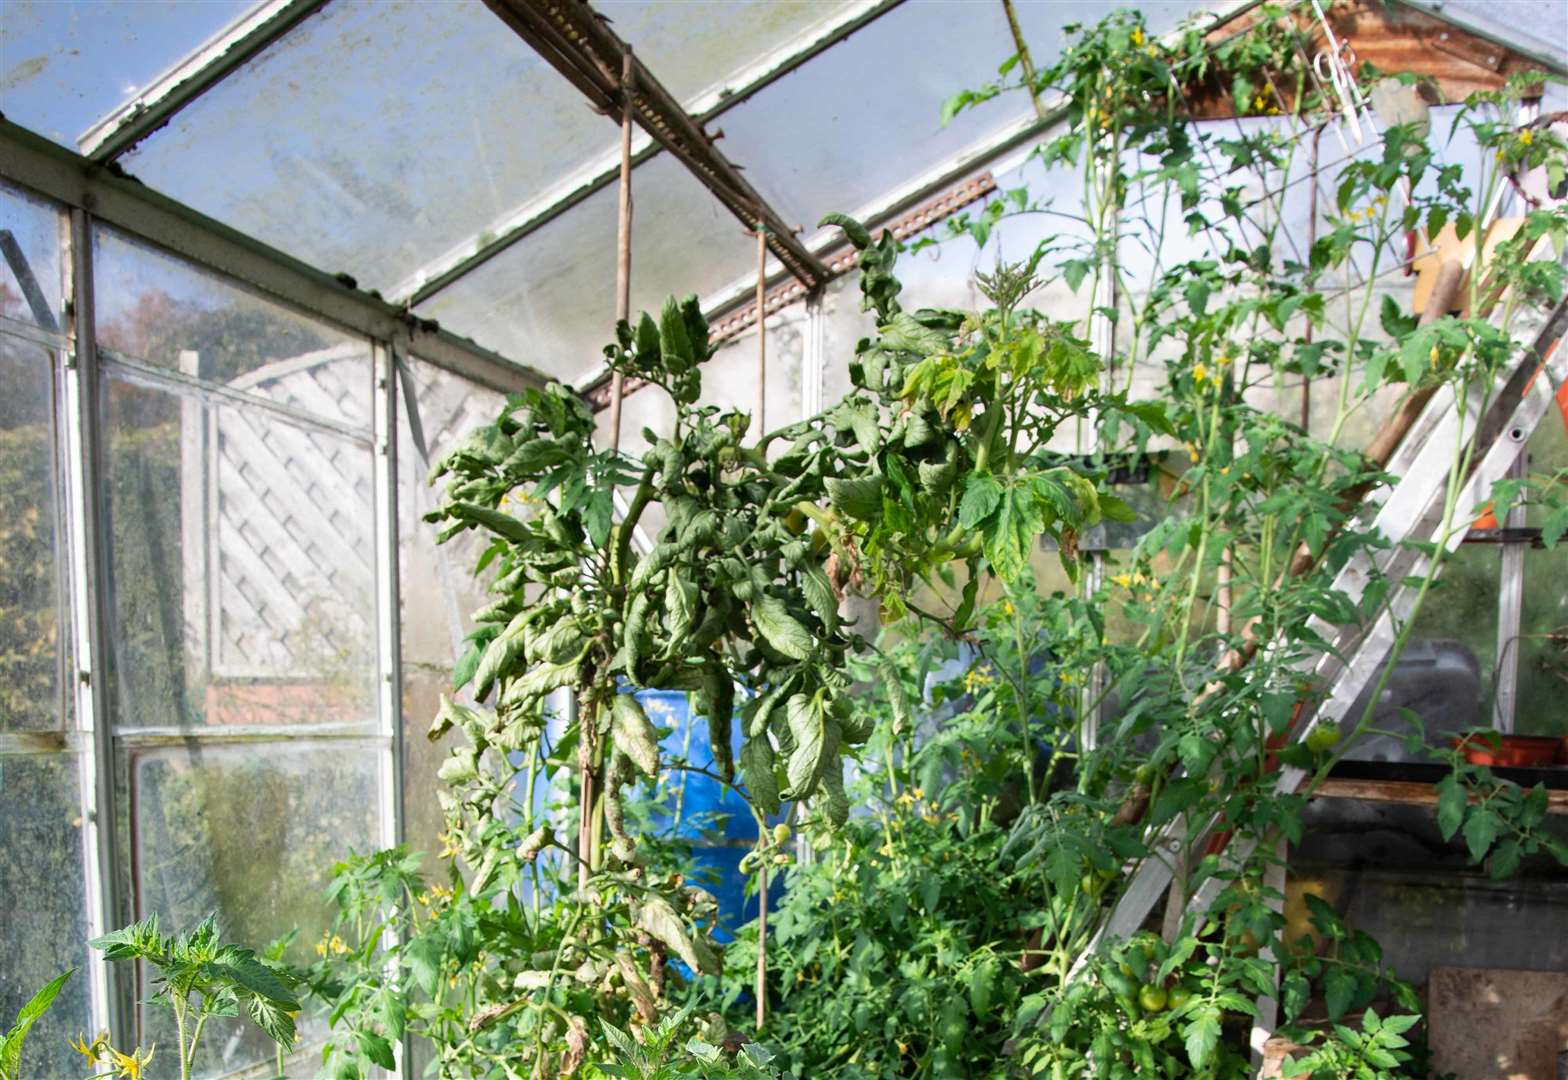 Frank's greenhouse full of tomatoes is a 'gardener's delight'